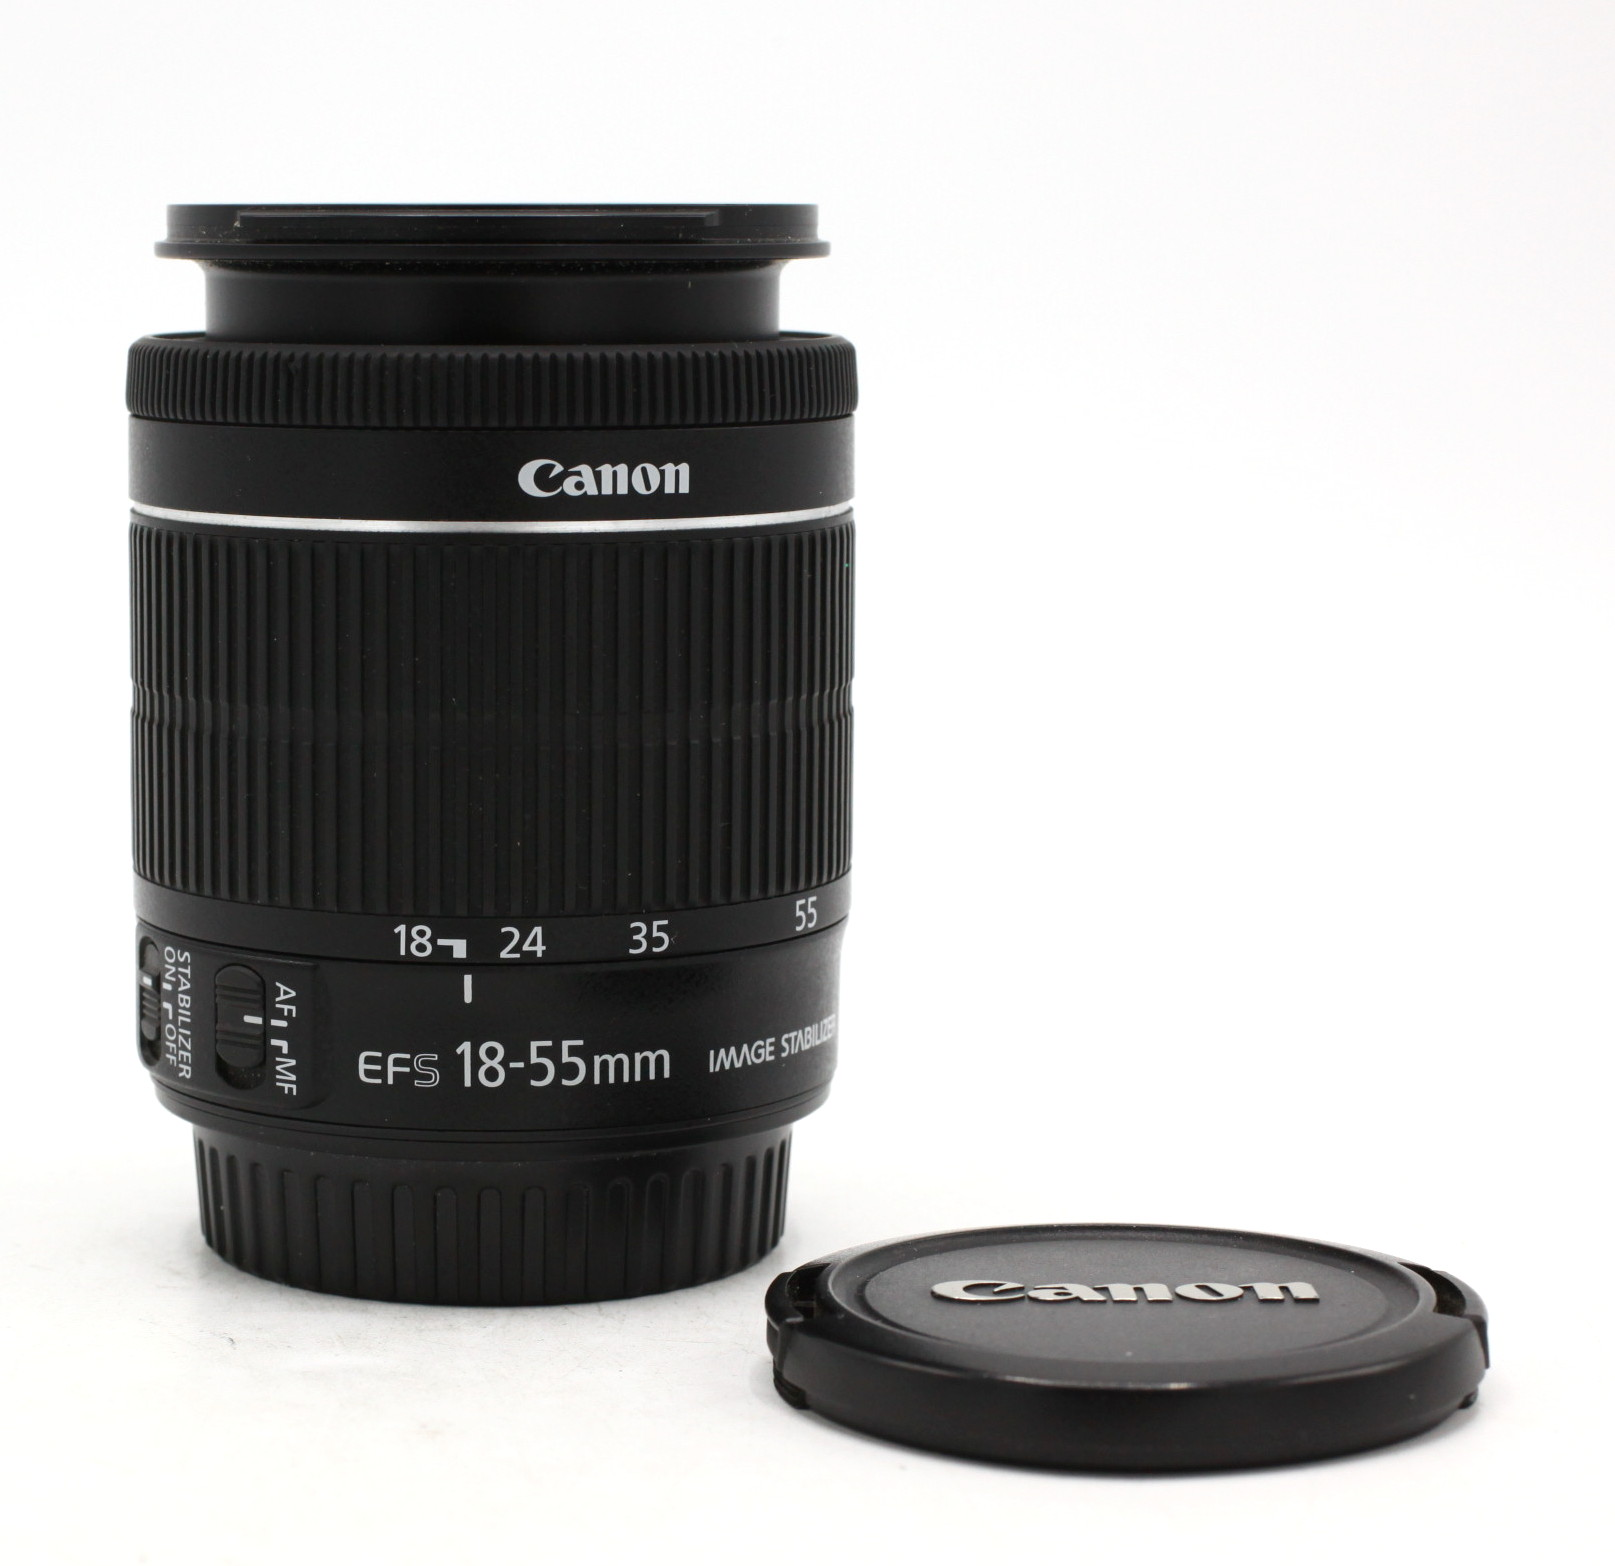 Canon EF-S 18-55mm iS STM F/3.5-5.6 occasion